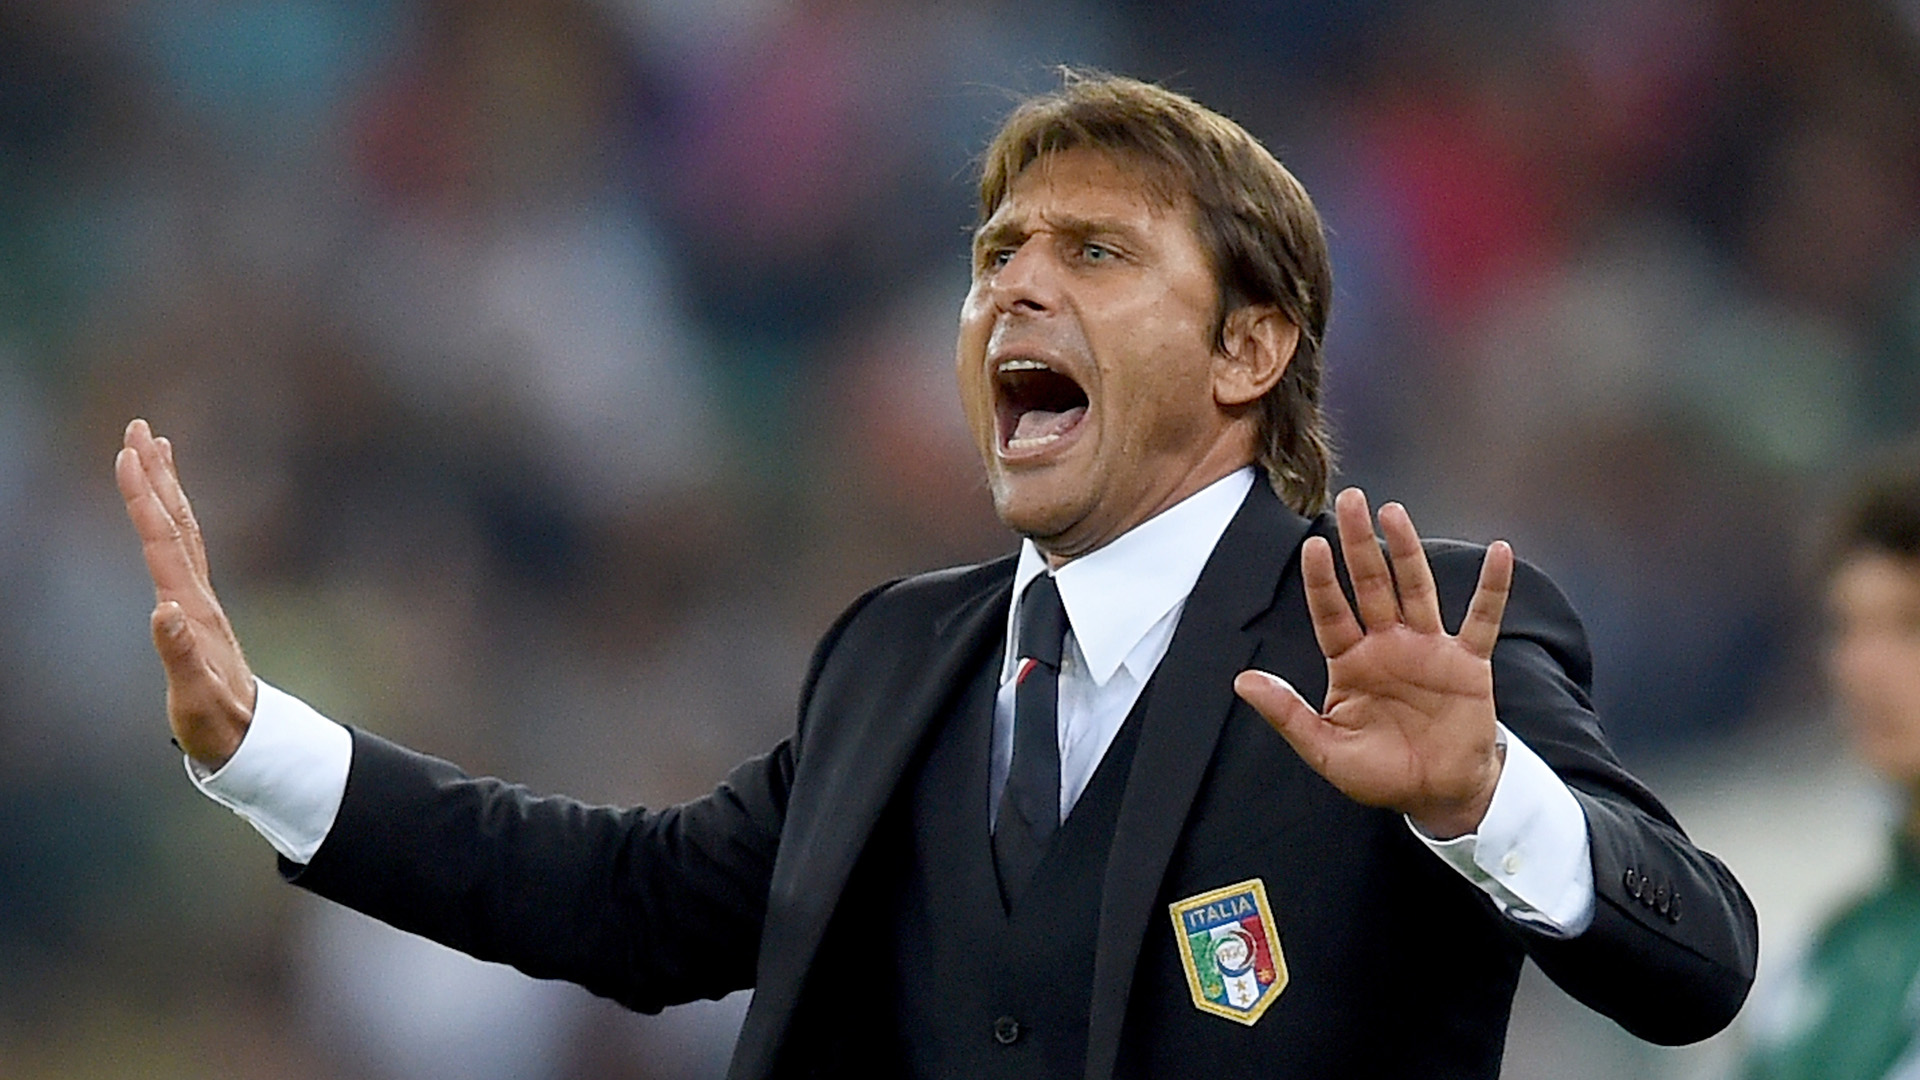 antonio-conte-FTR-090414-getty.jpg